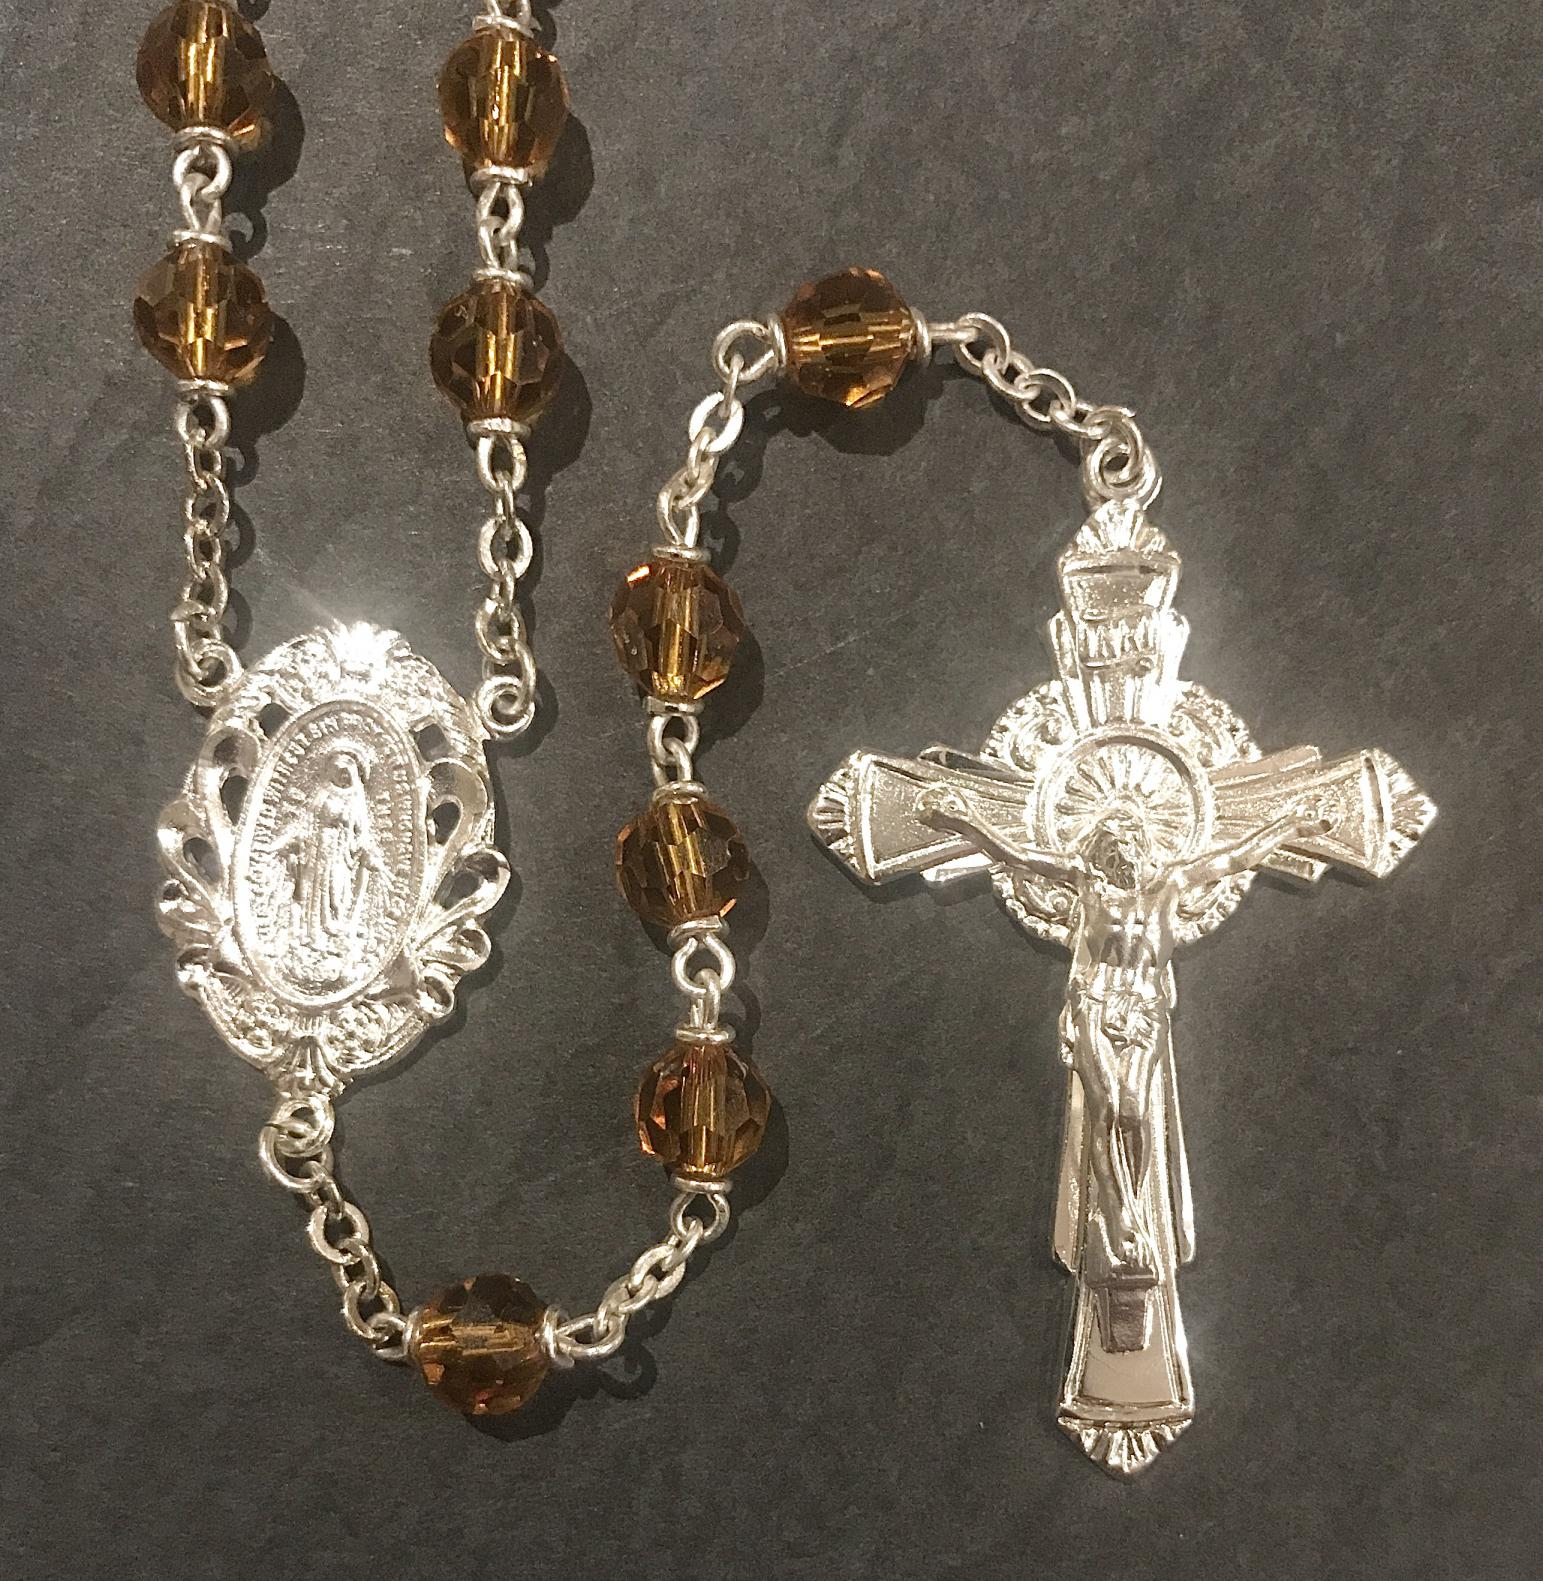 6mm TOPAZ TIN CUT LOC-LINK ROSARY WITH STERLING SILVER PLATED CRUCIFIX, CENTER, WIRE, CHAIN GIFT BOXED